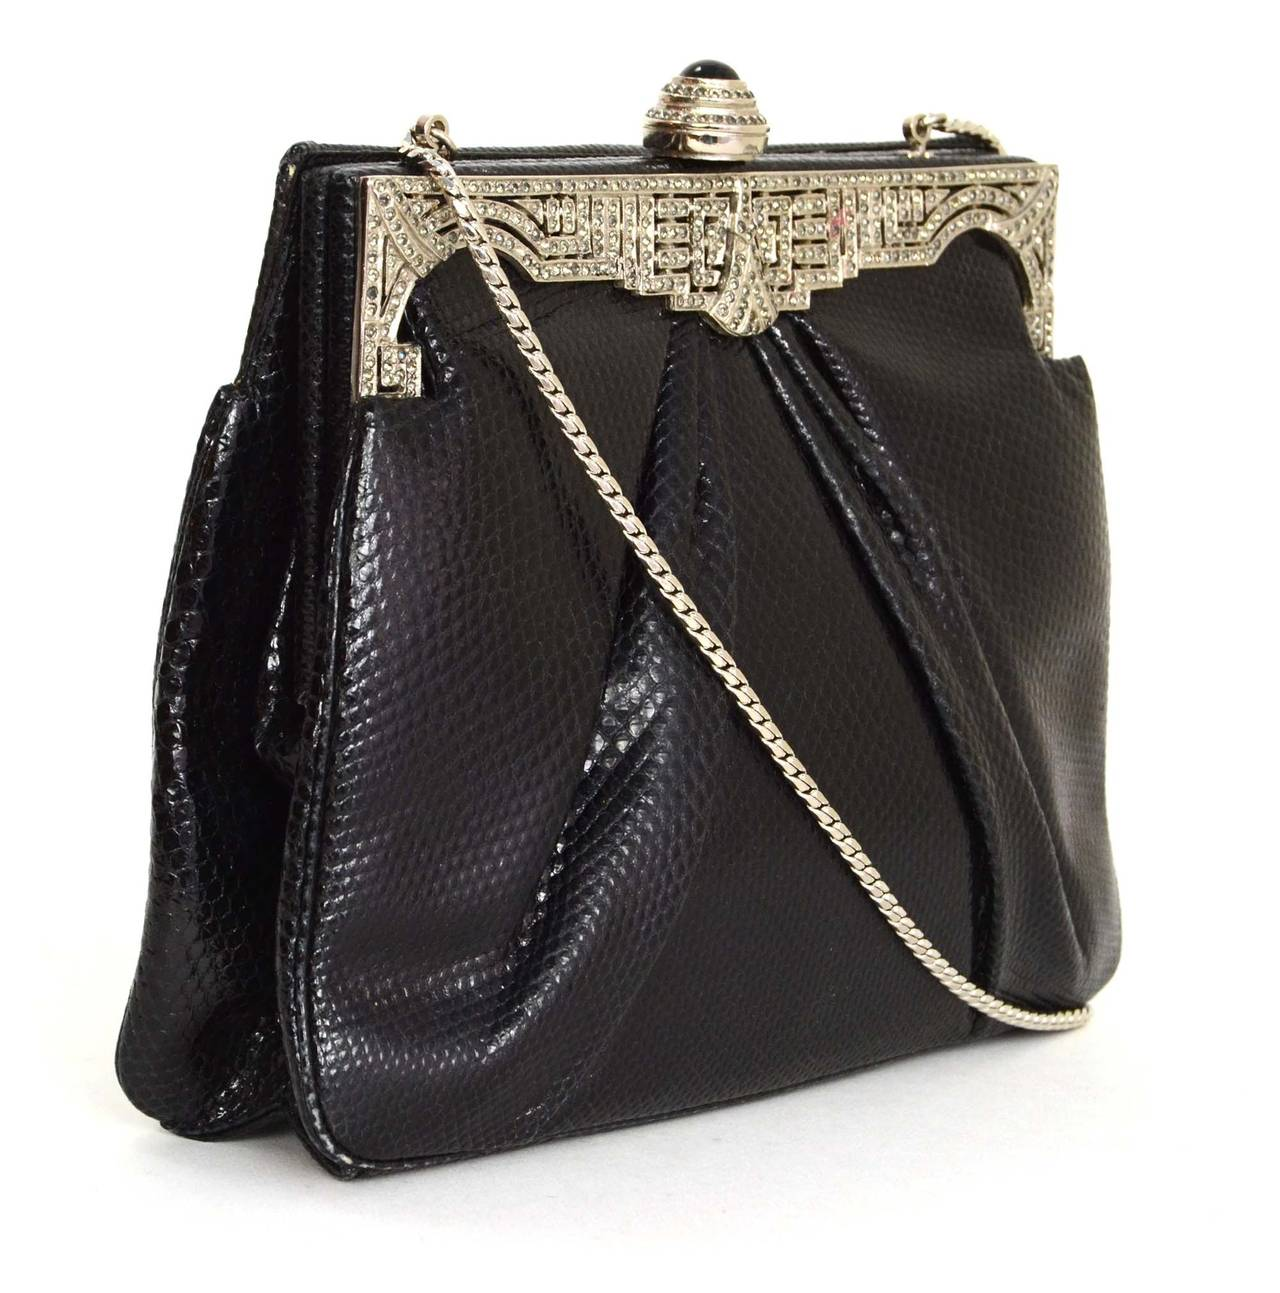 Judith Leiber Black Lizard Skin & Rhinestone Evening Bag